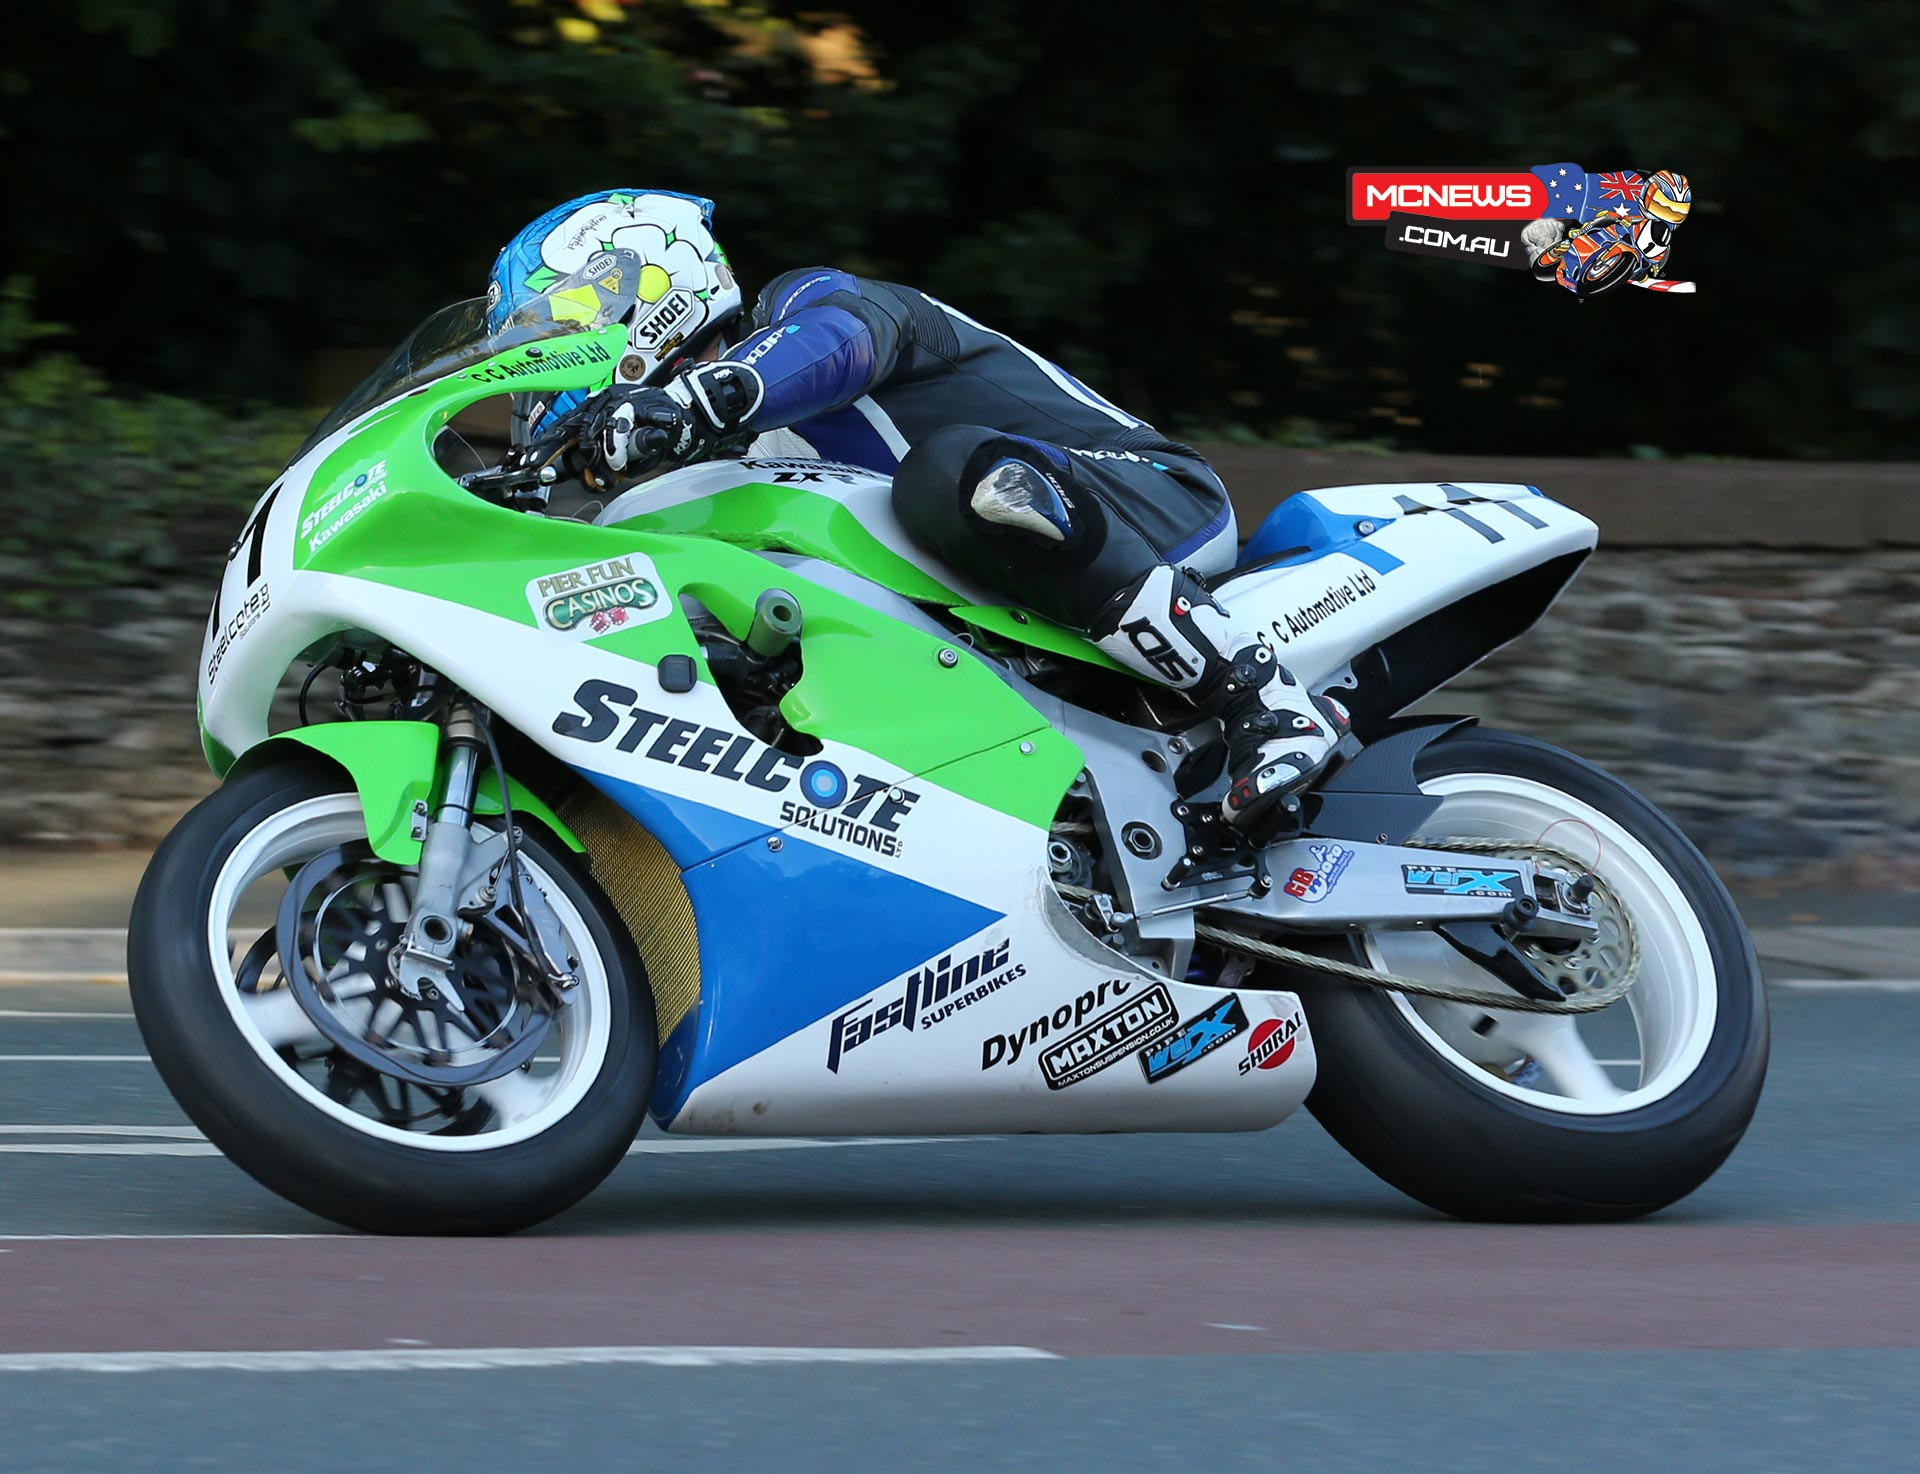 Dean Harrison at speed on the Steelcote Solutions Ltd Kawasaki.